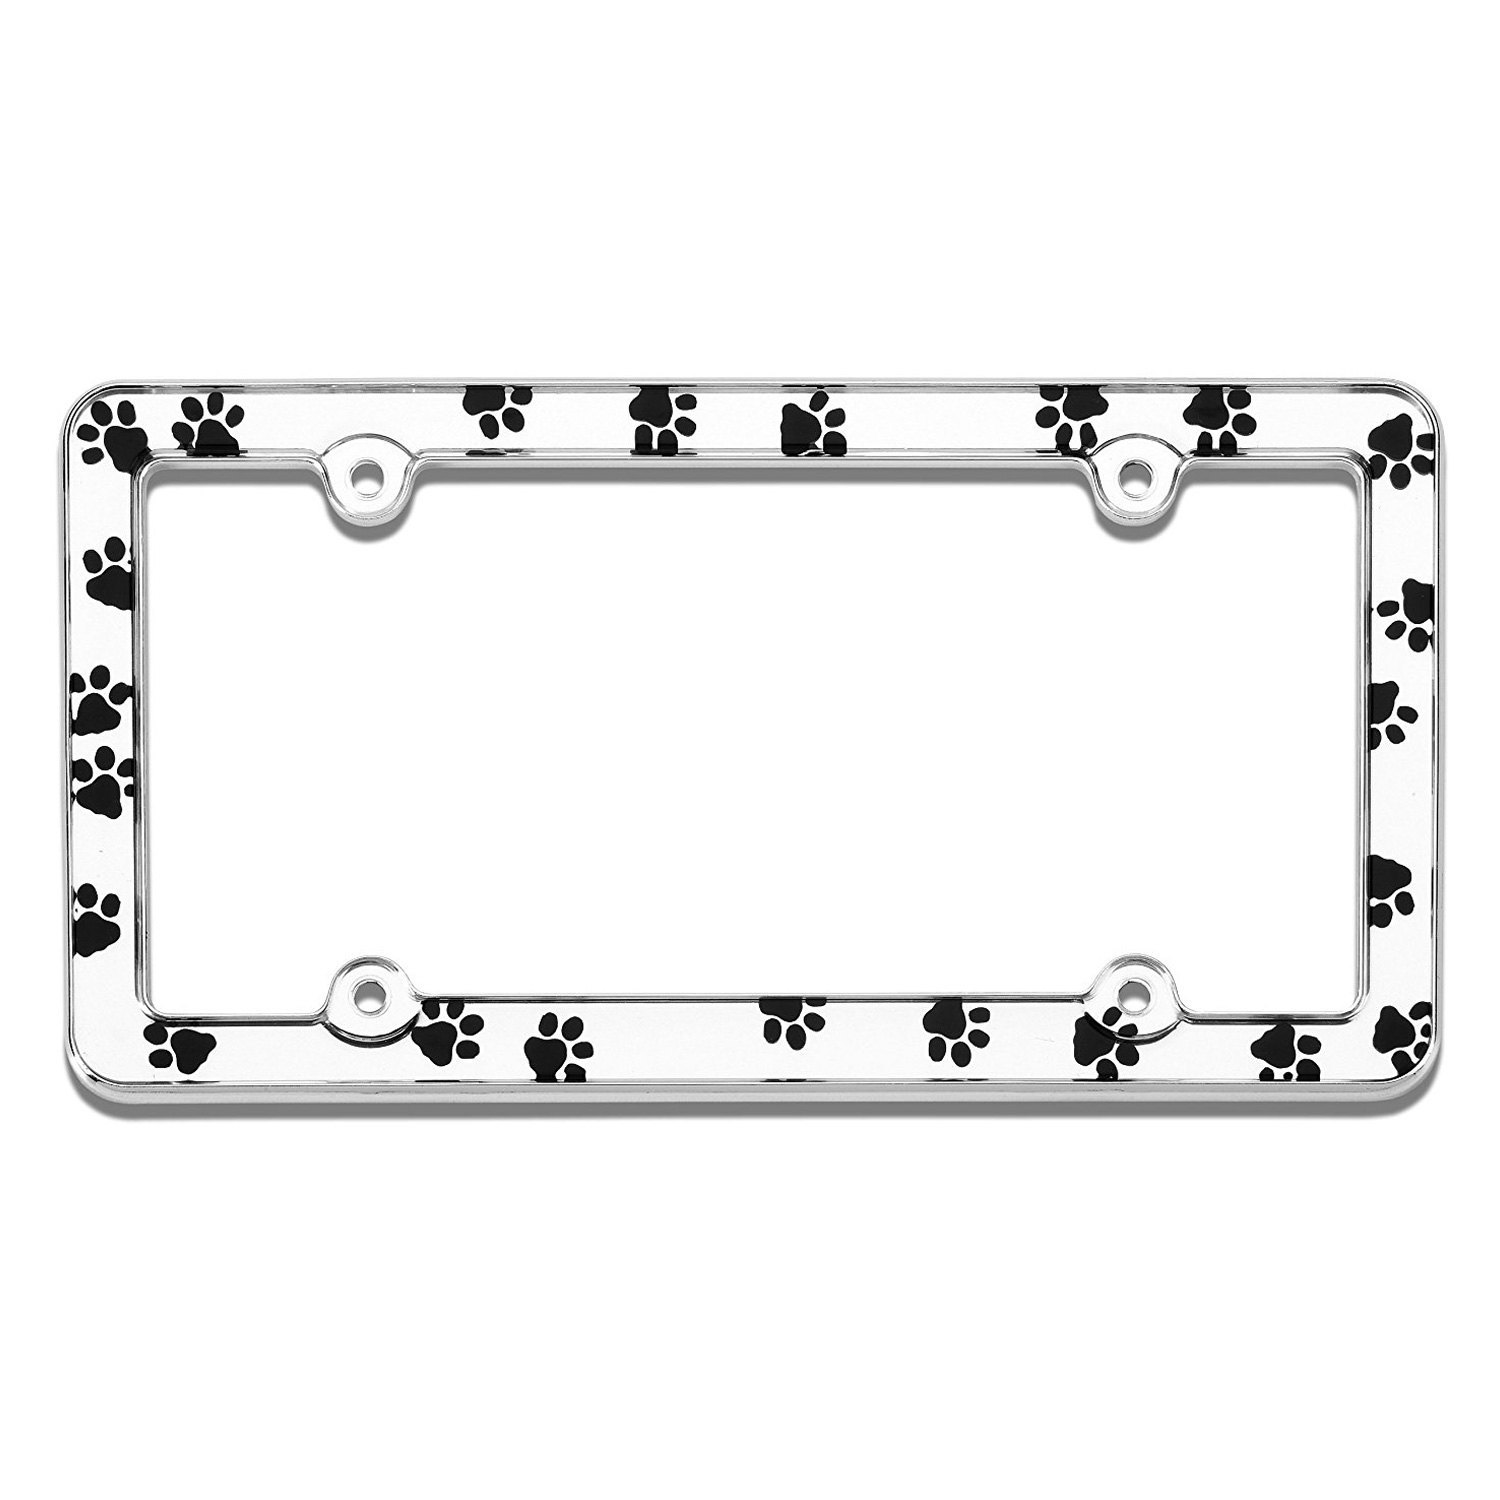 Cruiser® 23033 - Paws Style Chrome License Plate Frame